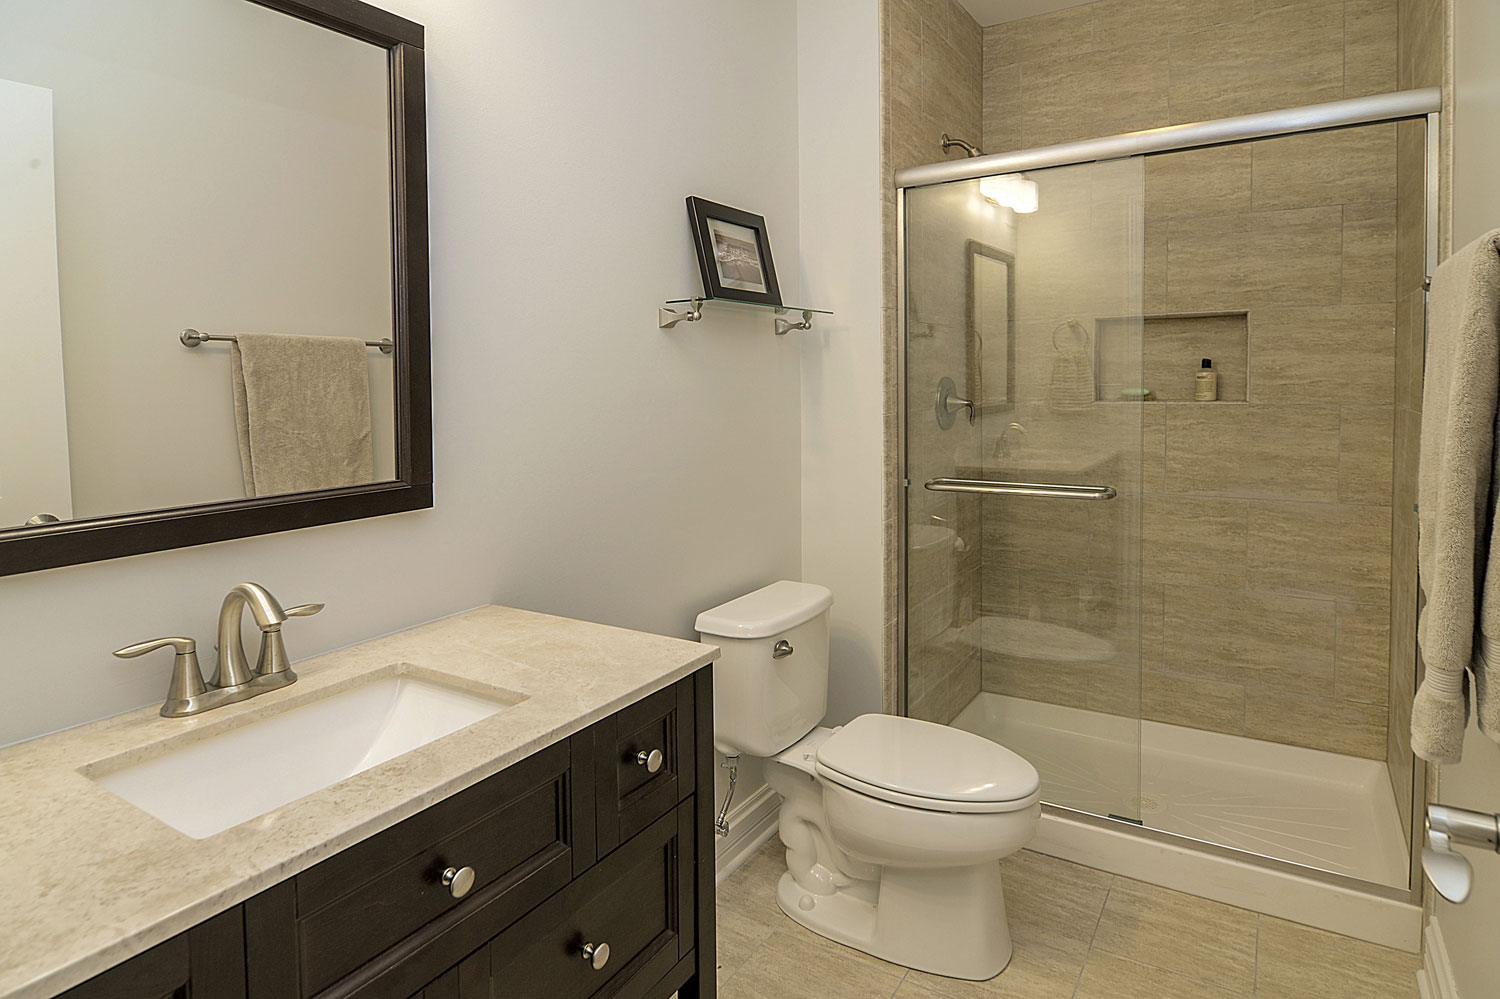 Steve Emily 39 S Hall Bathroom Remodel Pictures Home Remodeling Contractors Sebring Design Build